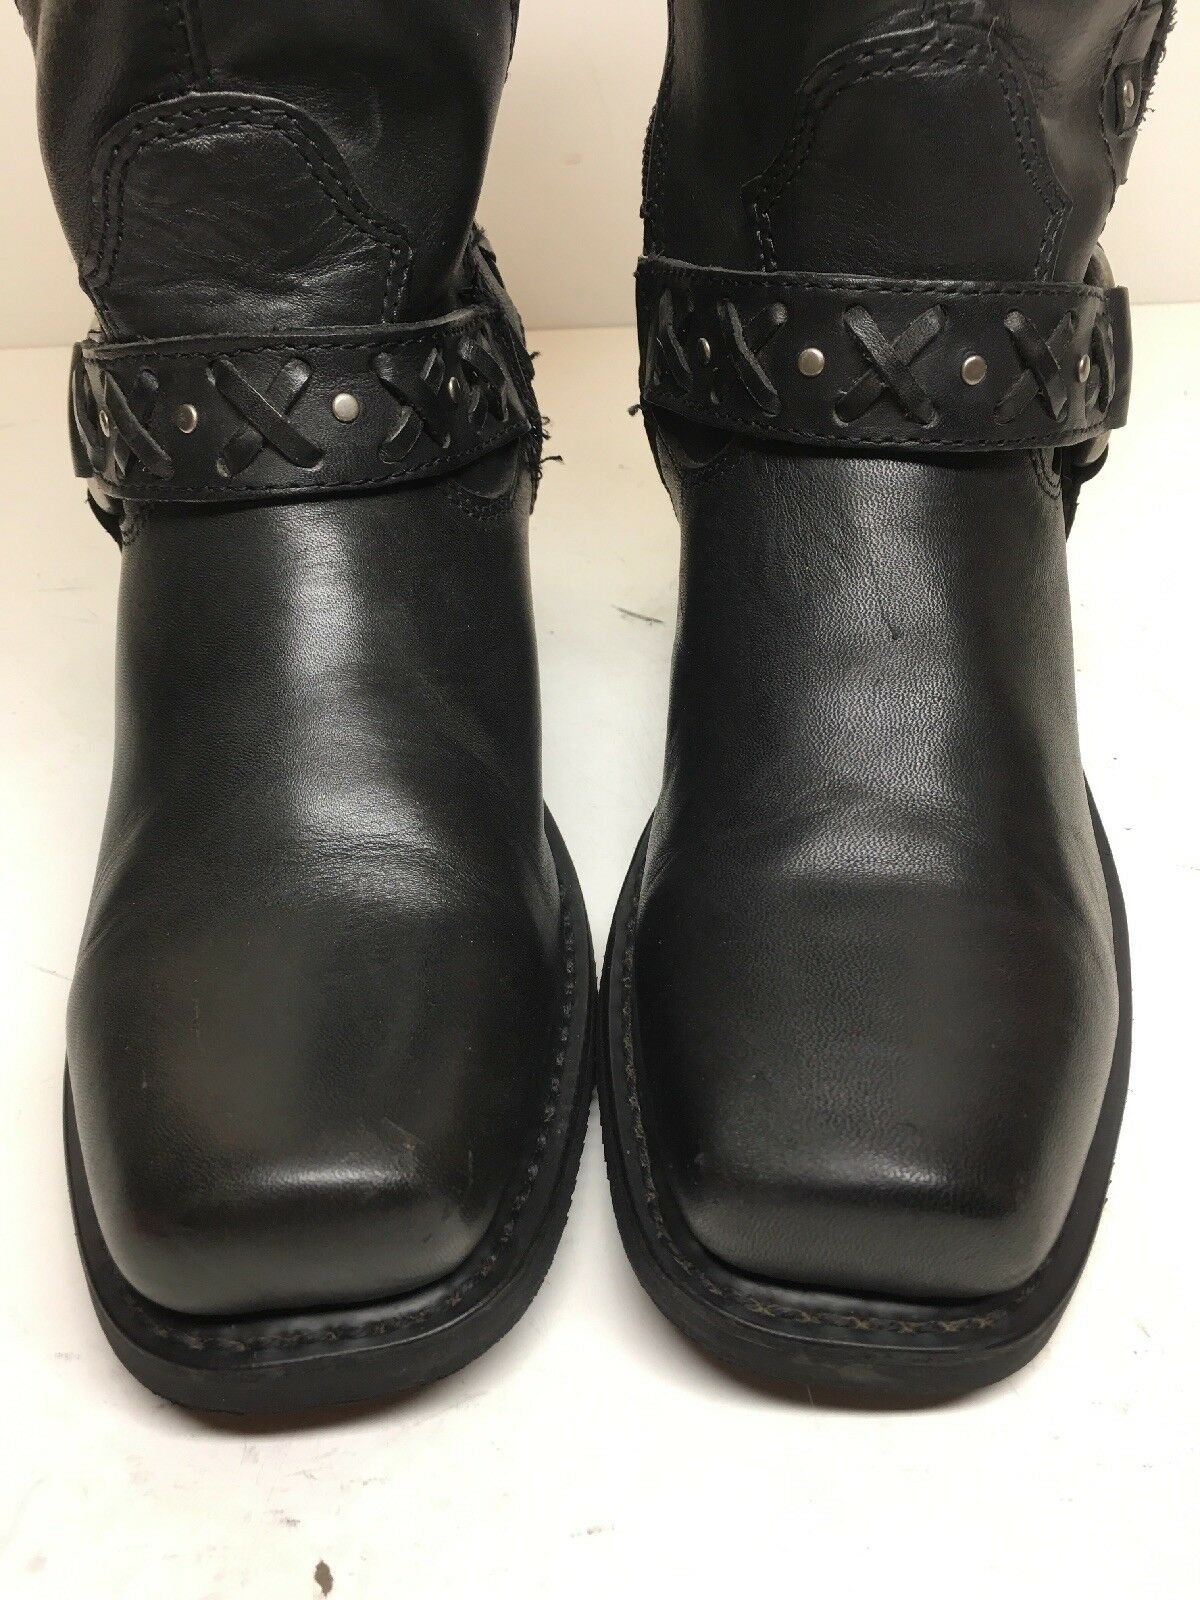 VTG WOMENS HARLEY DAVIDSON SQUARE TOE HARNESS MOTORCYCLE BLACK BOOTS BOOTS BOOTS SIZE 6.5 4e4529